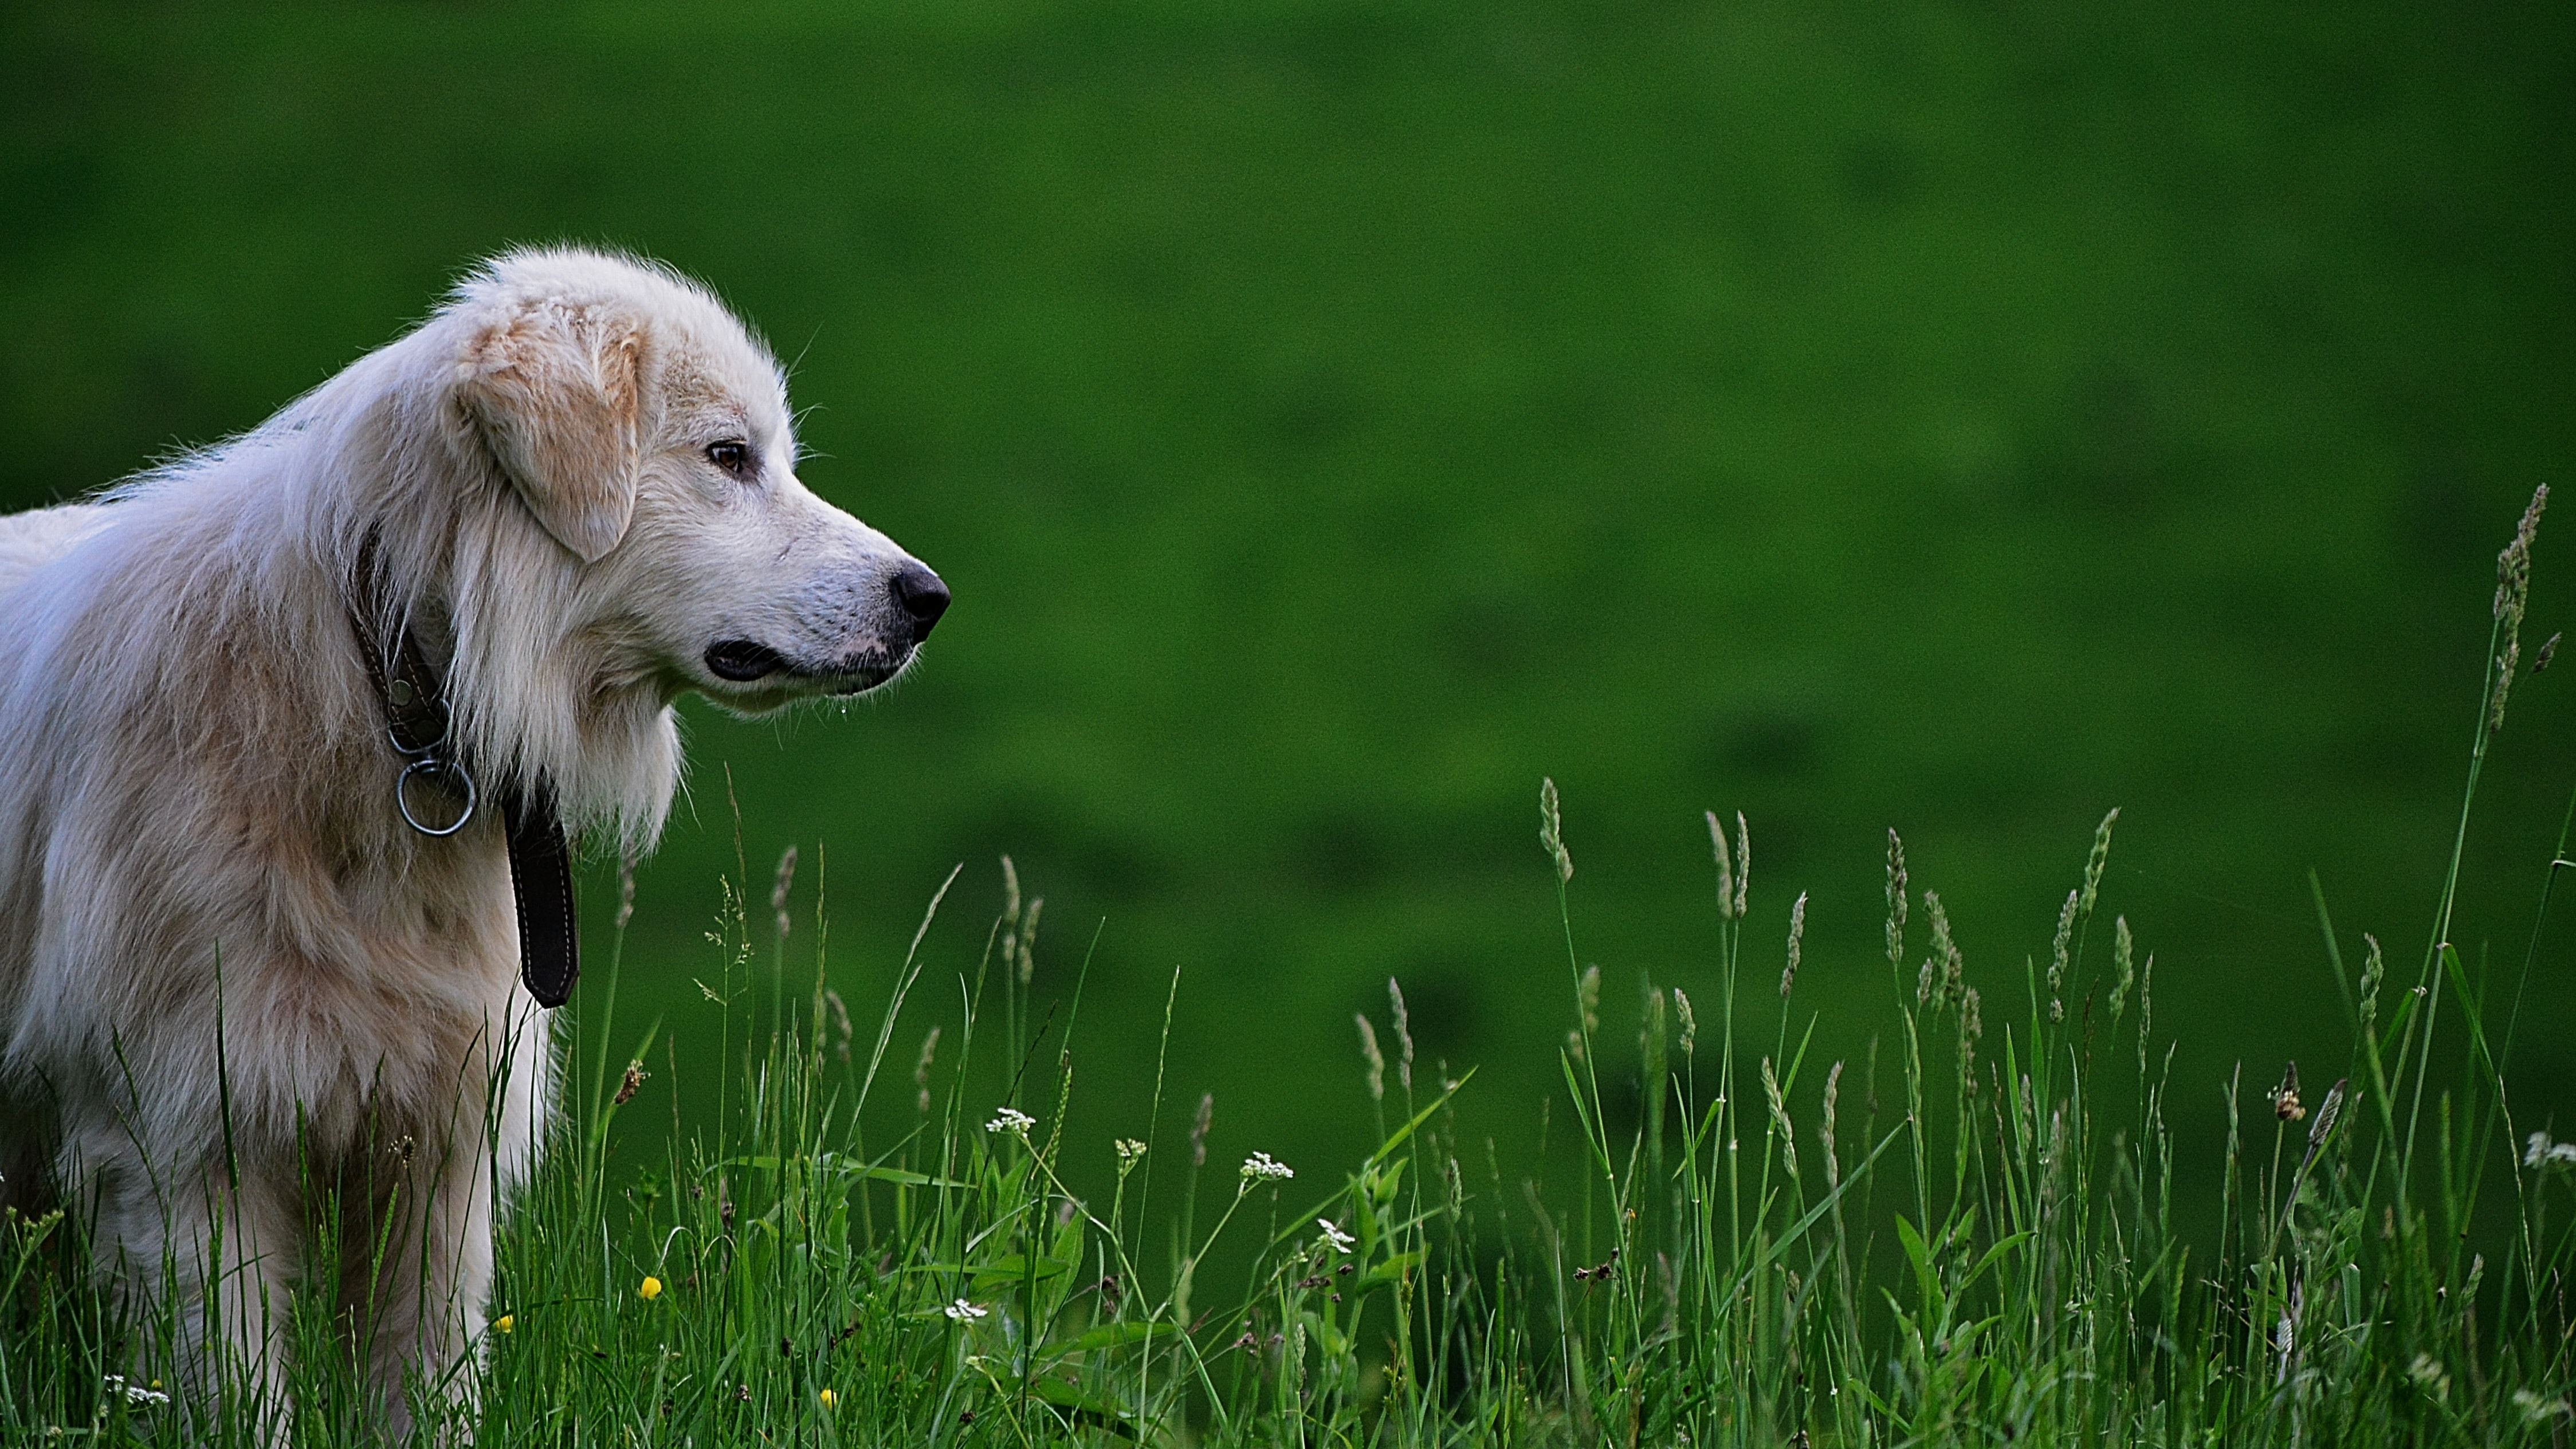 dog on green grass at daytime